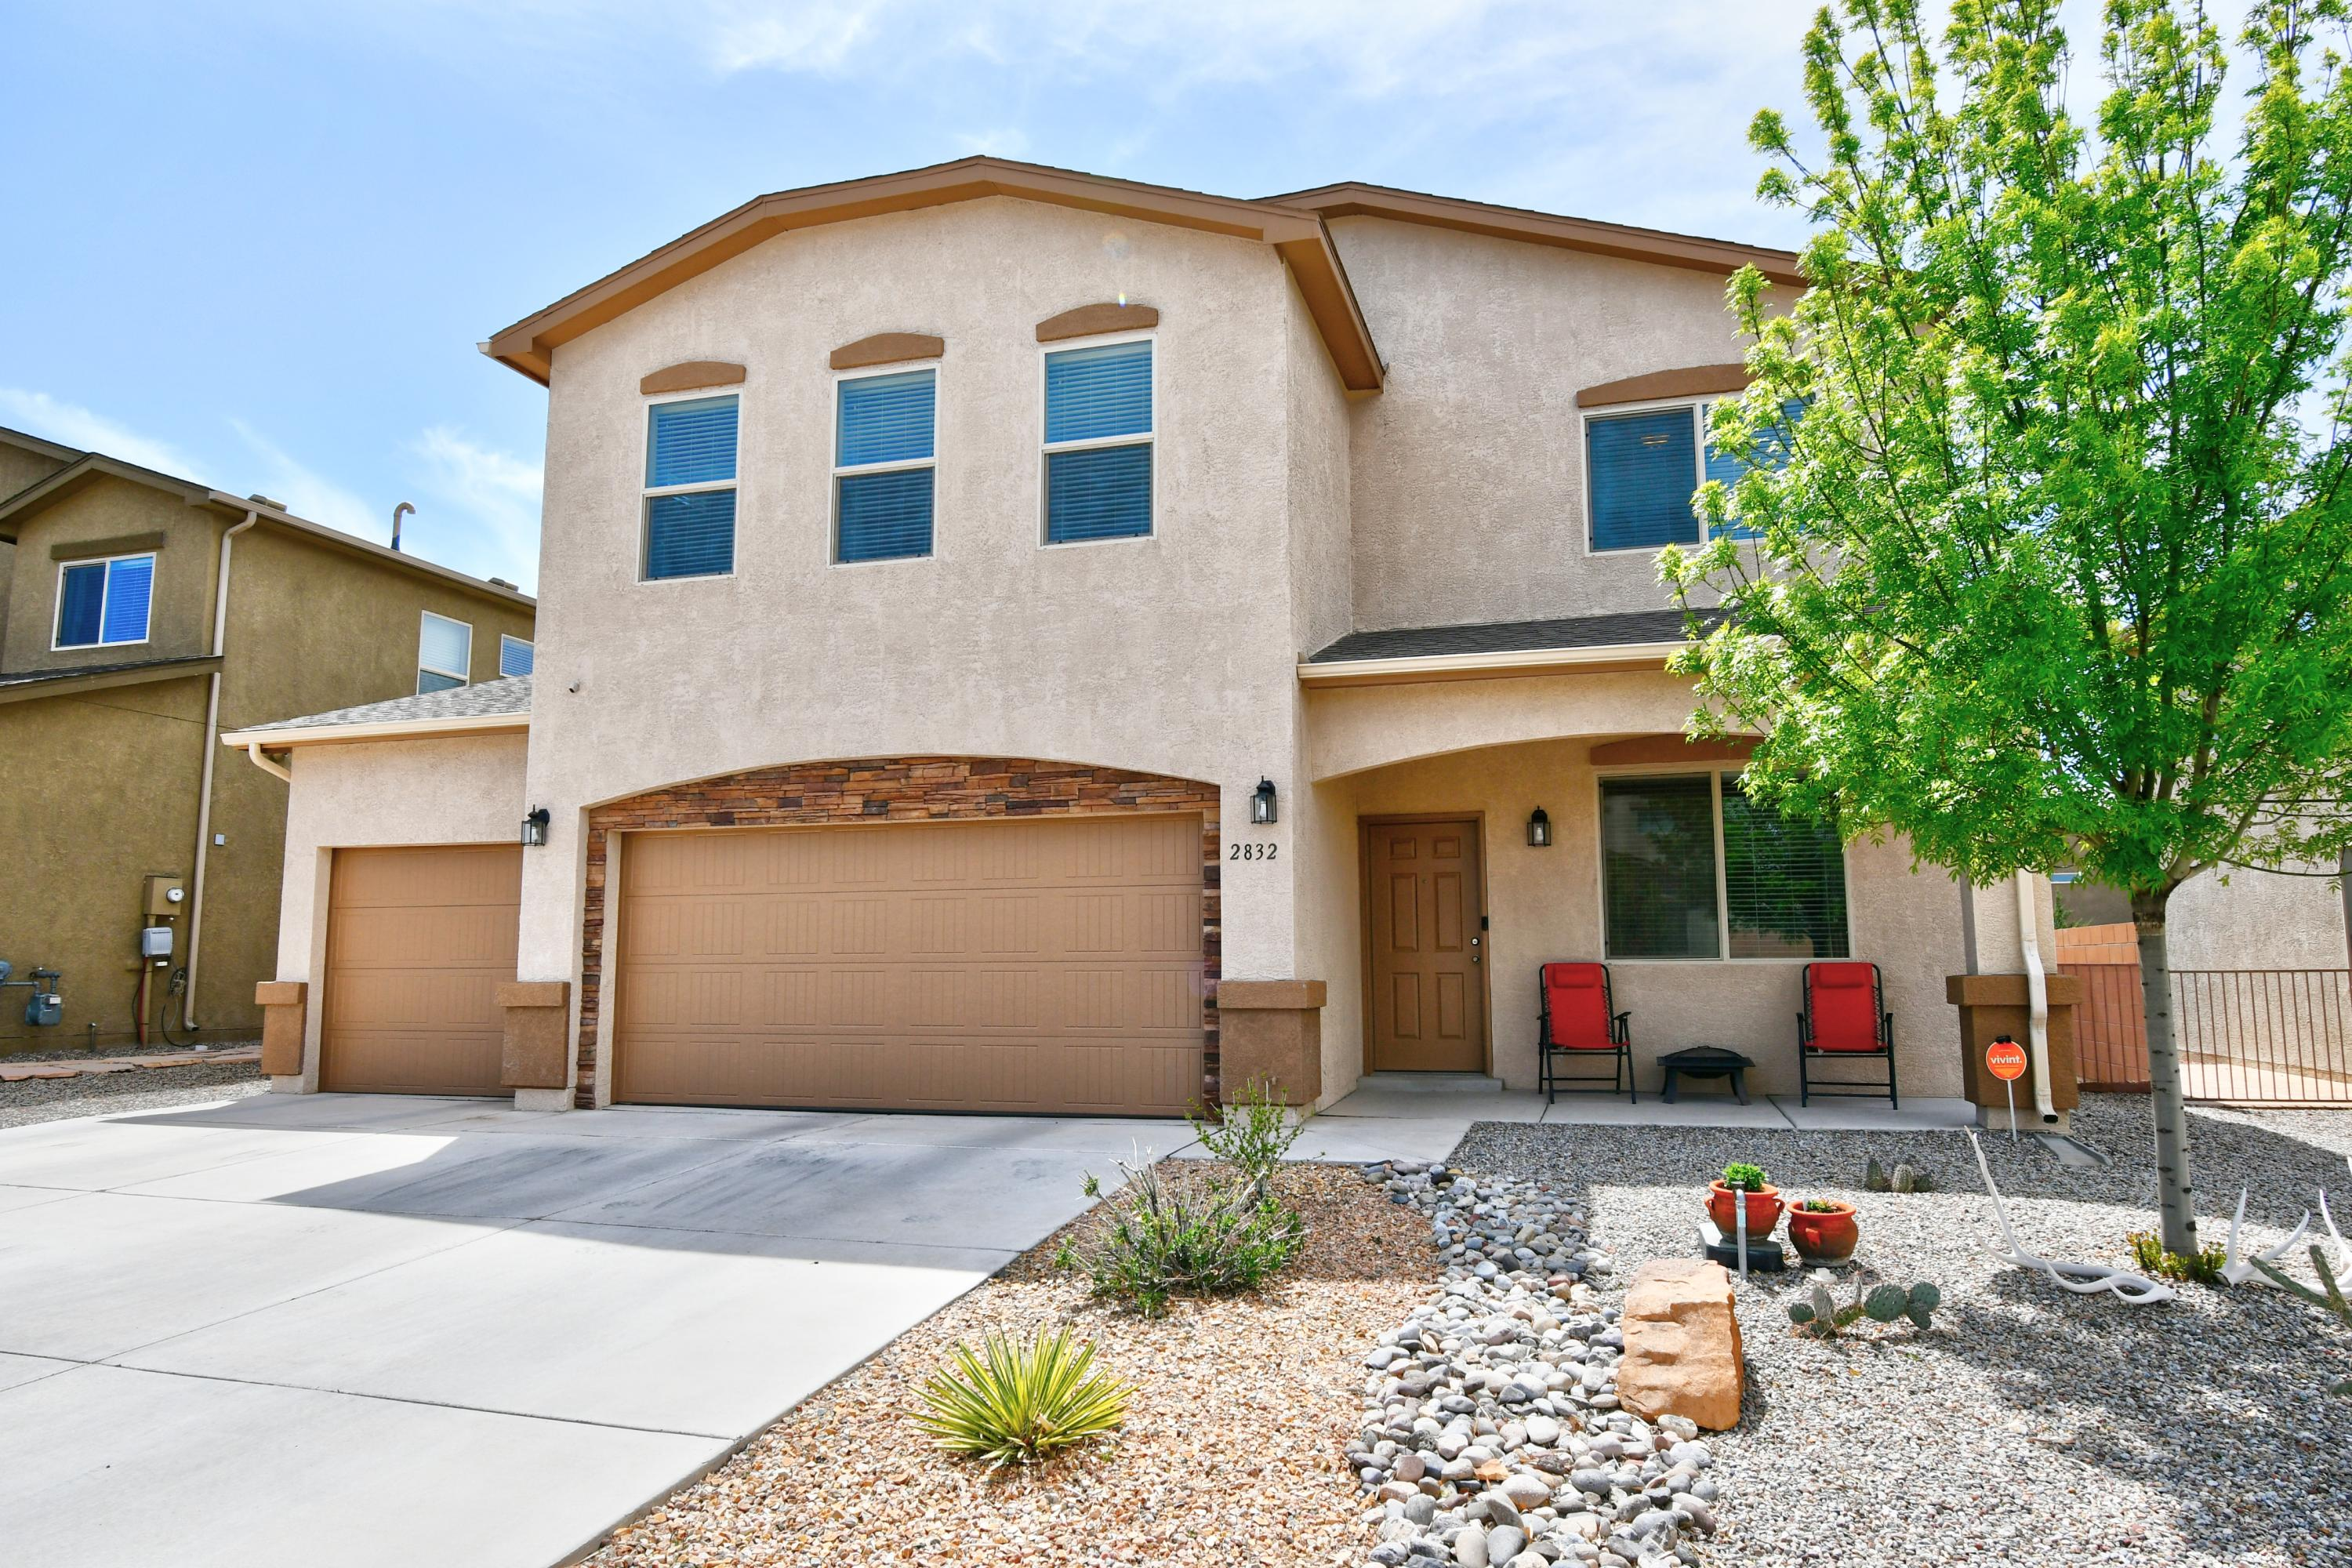 2832 Camacho Road, Rio Rancho NM 87124